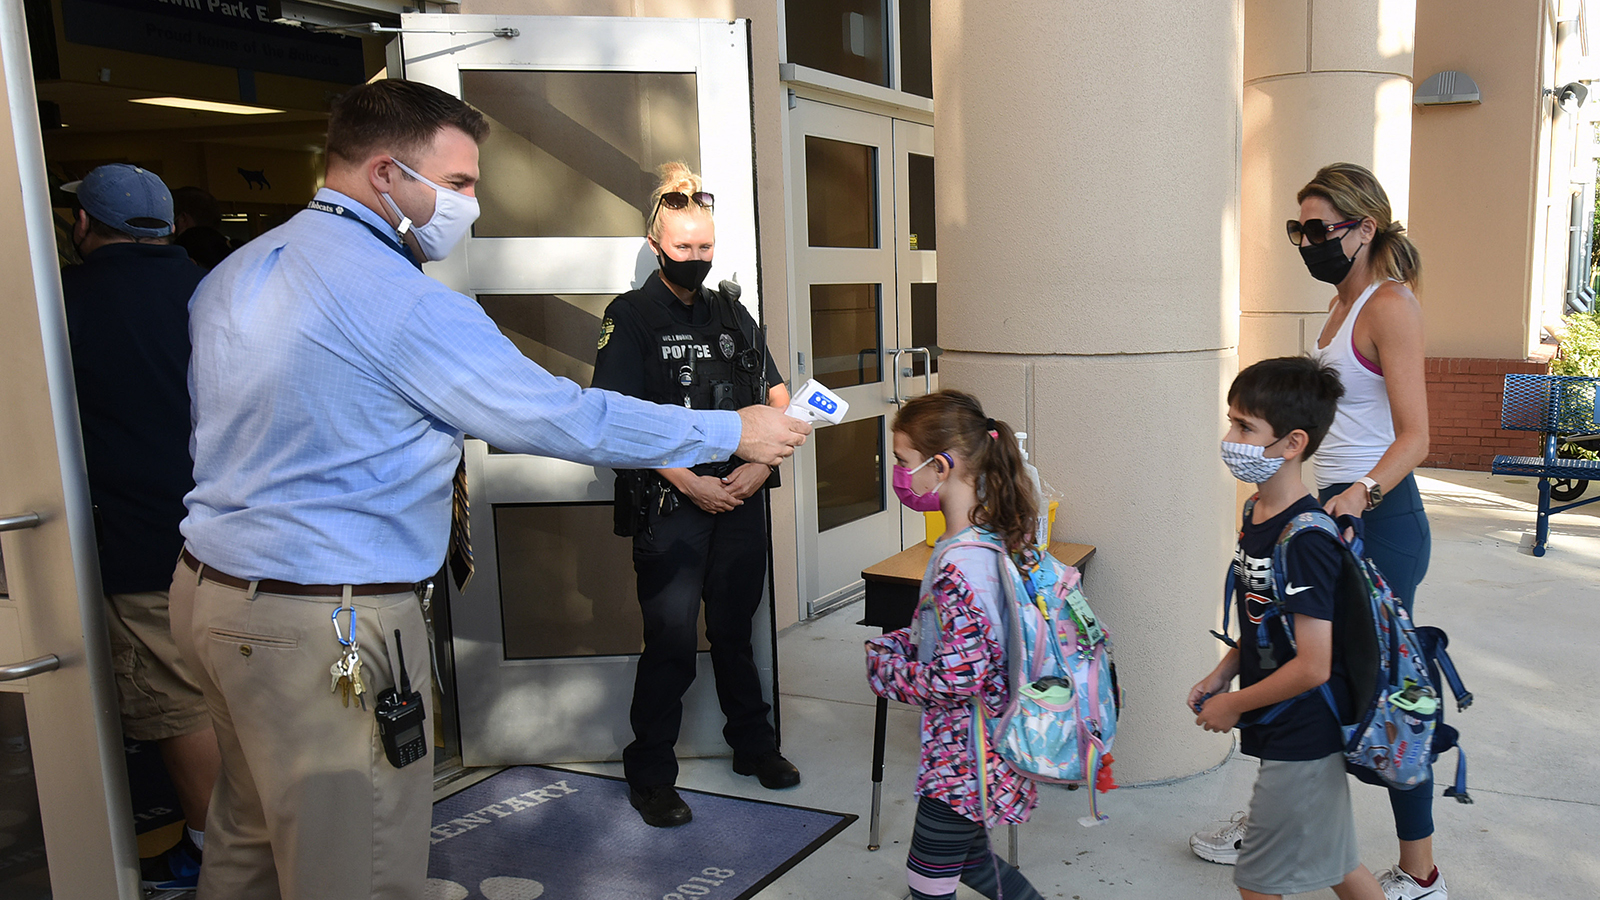 Principal Nathan Hay performs temperature checks on students as they arrive on the first day of classes for the 2021-22 school year at Baldwin Park Elementary School in Orlando, Florida.